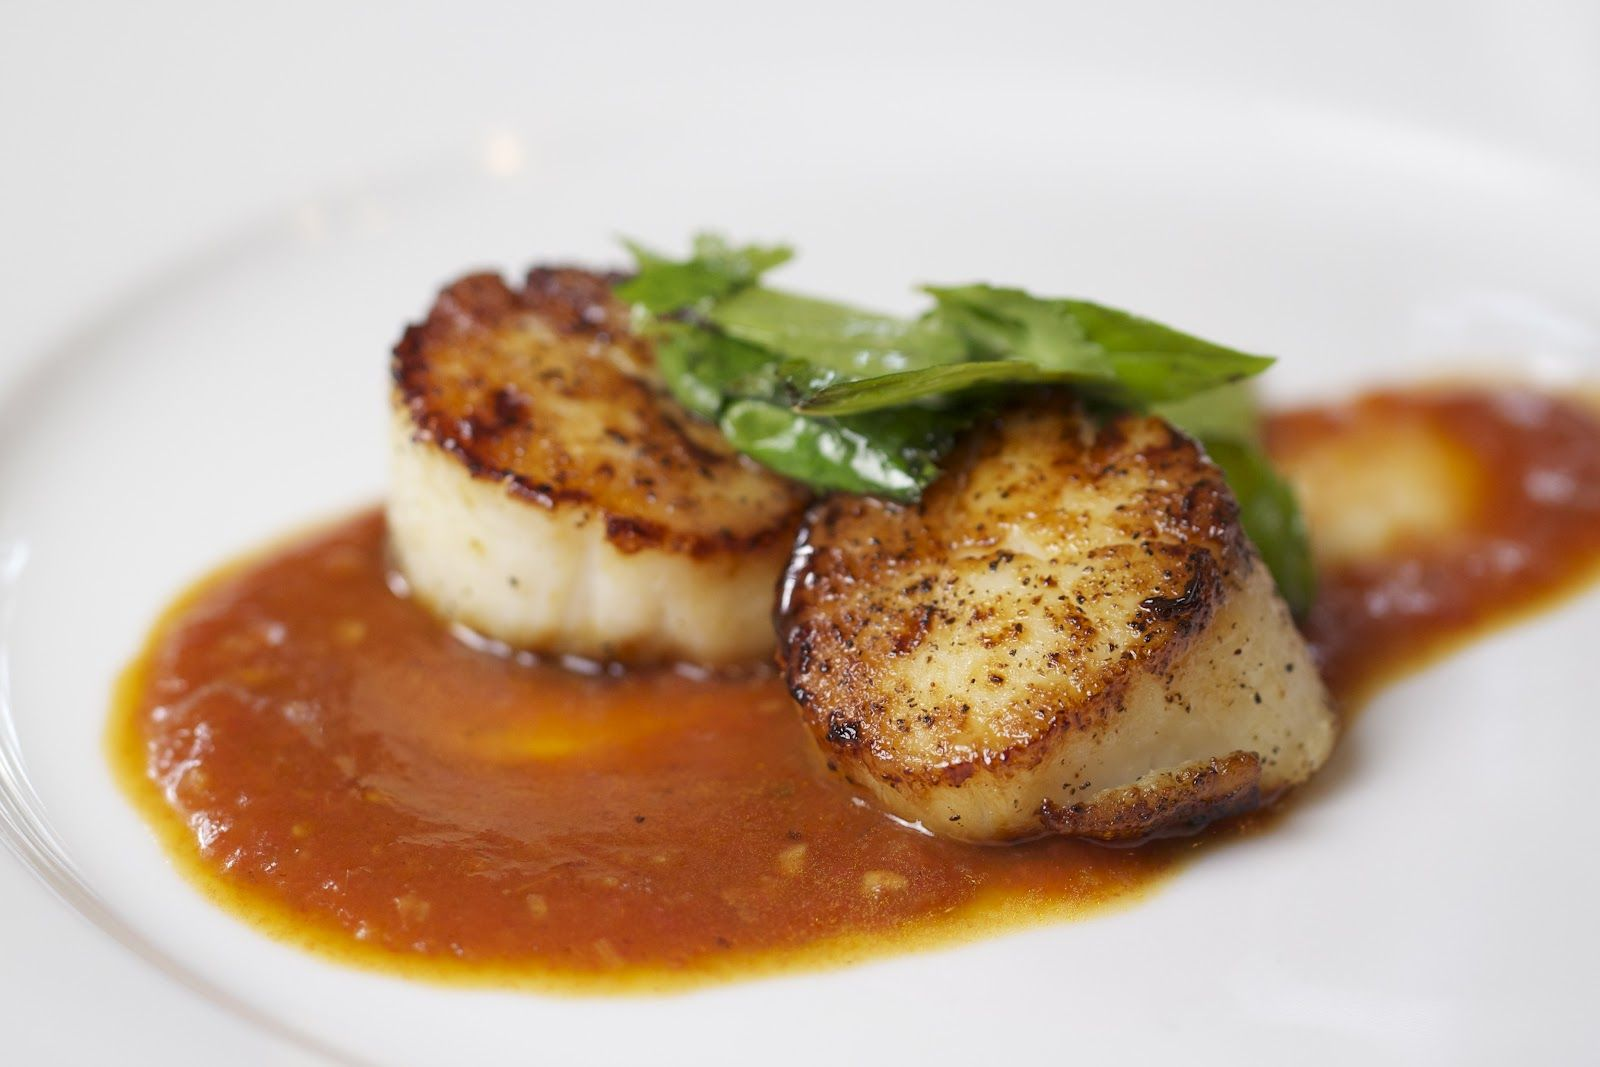 Thyme In Our Kitchen: Seared Scallops with Tomato-Lemongrass Sauce